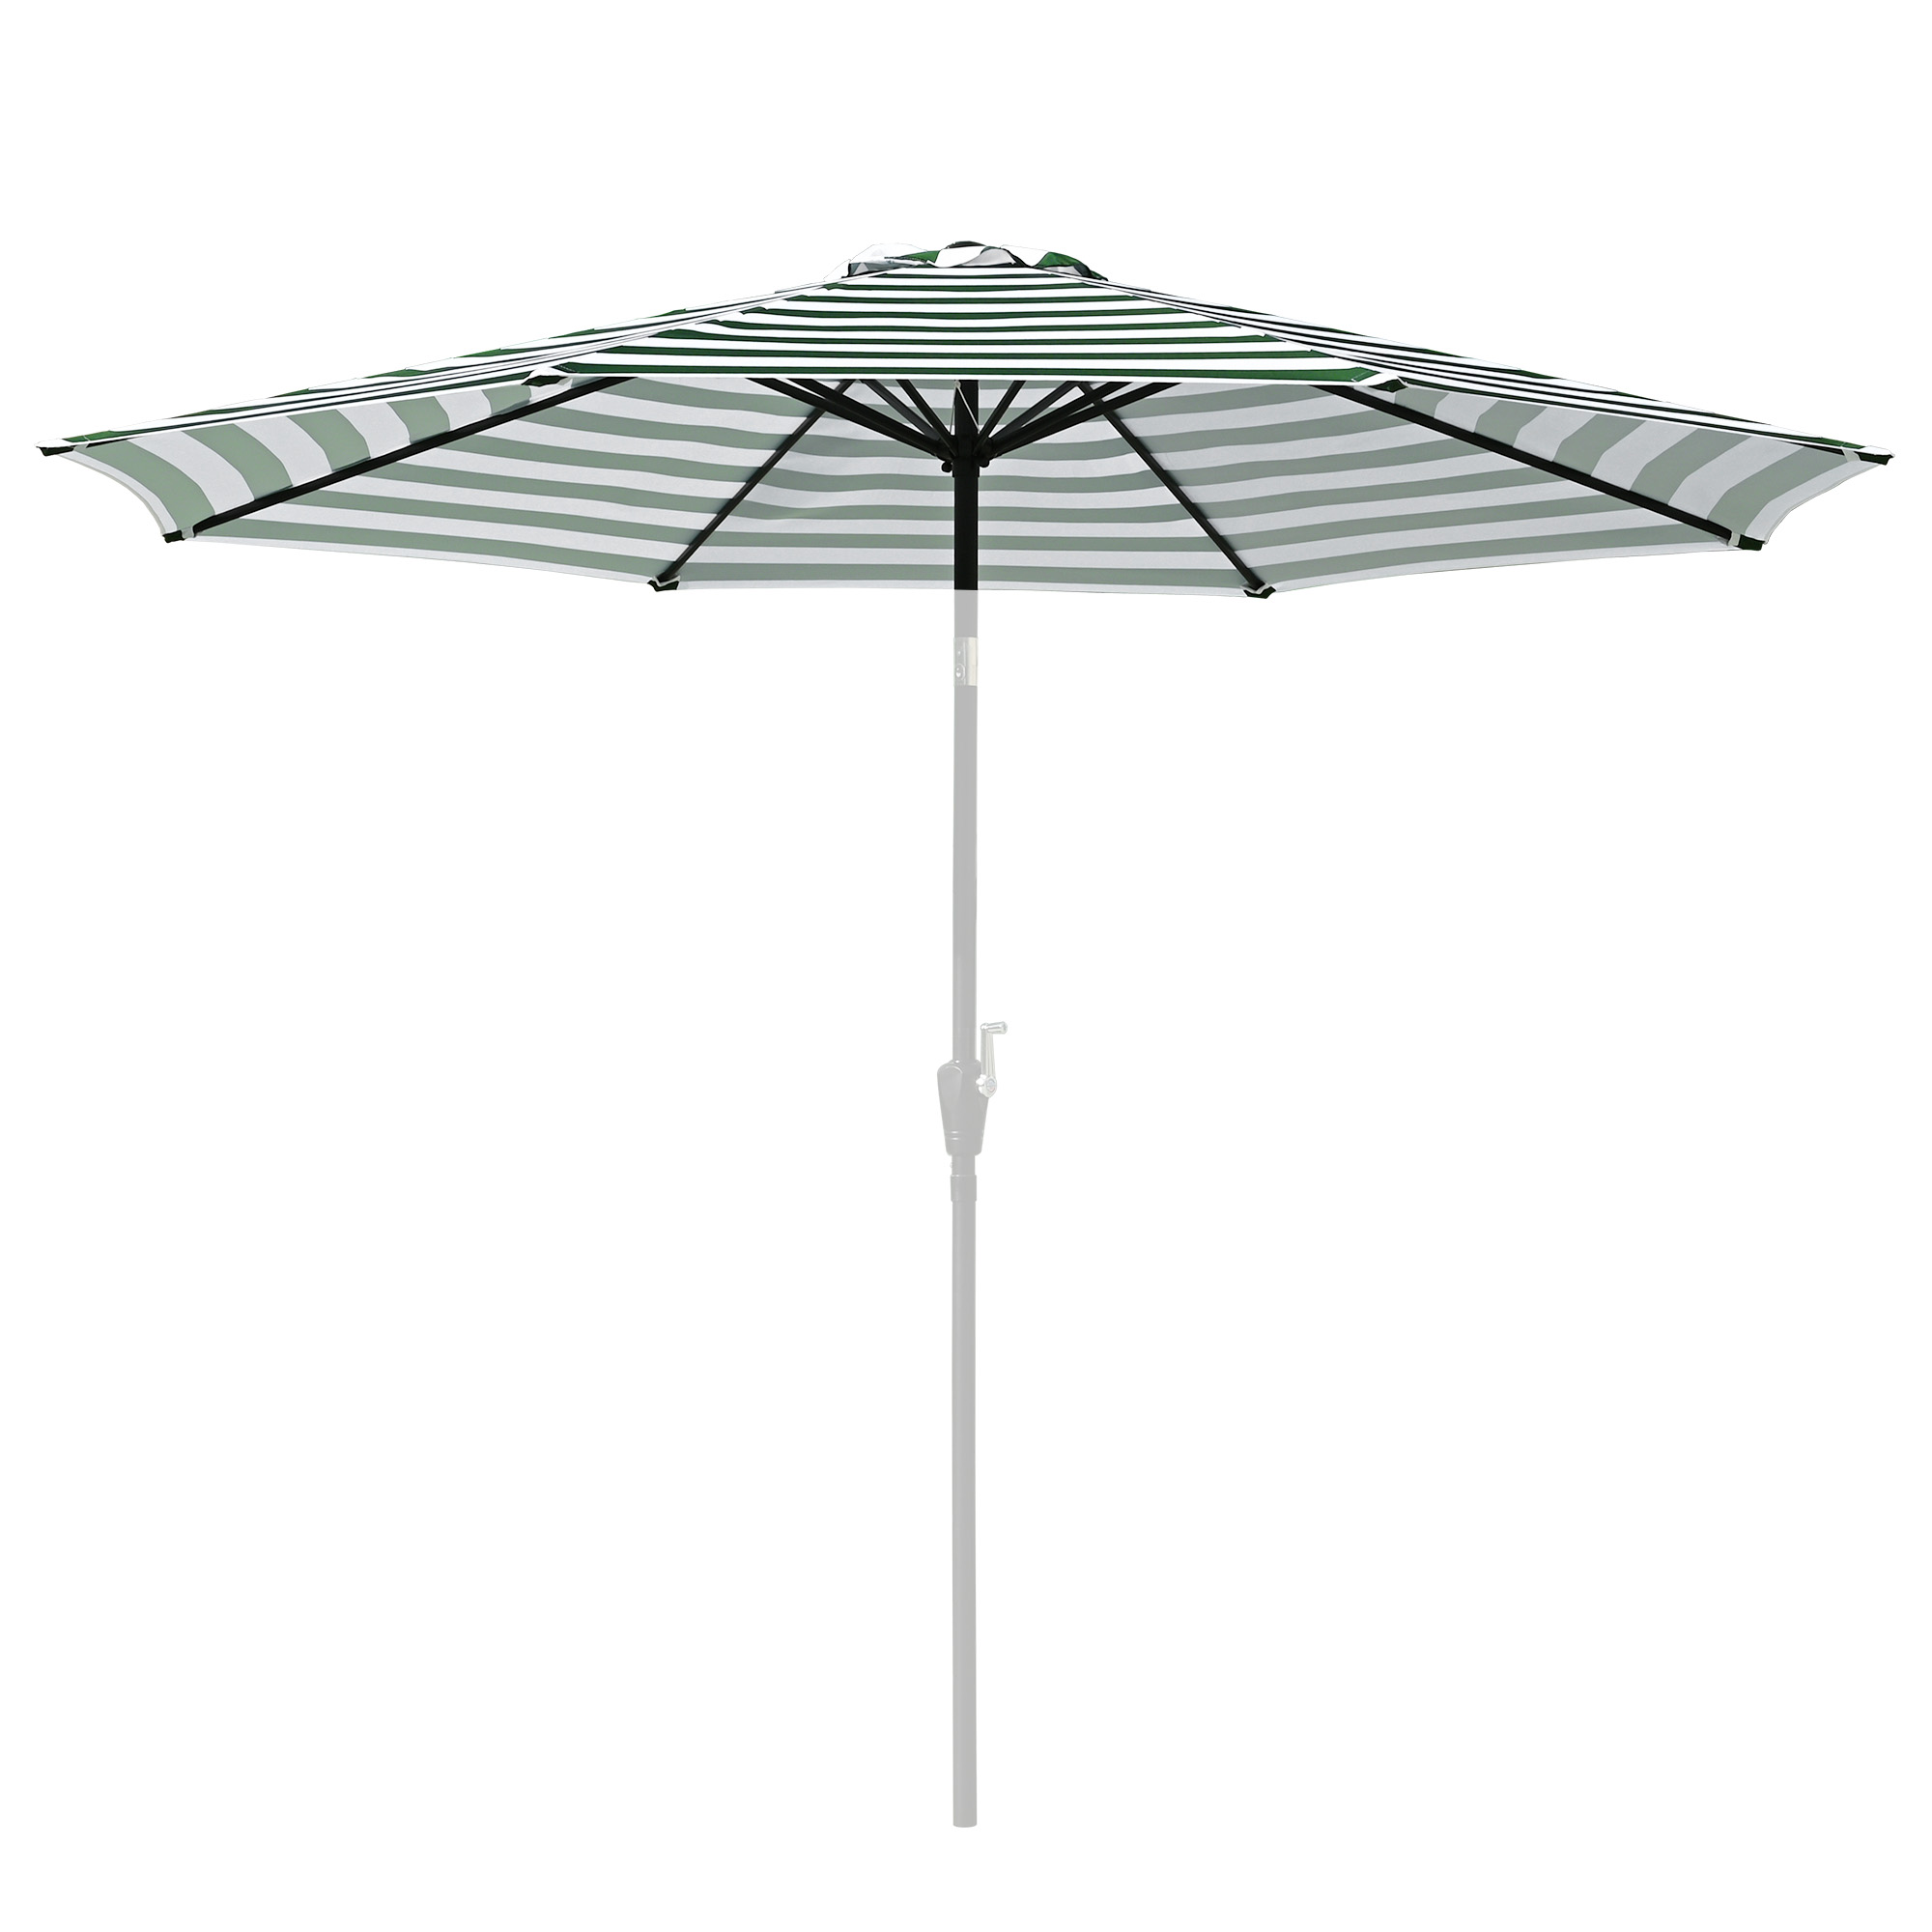 thumbnail 50 - 8'/9'/10'/13' Umbrella Replacement Canopy 8 Rib Outdoor Patio Top Cover Only Opt